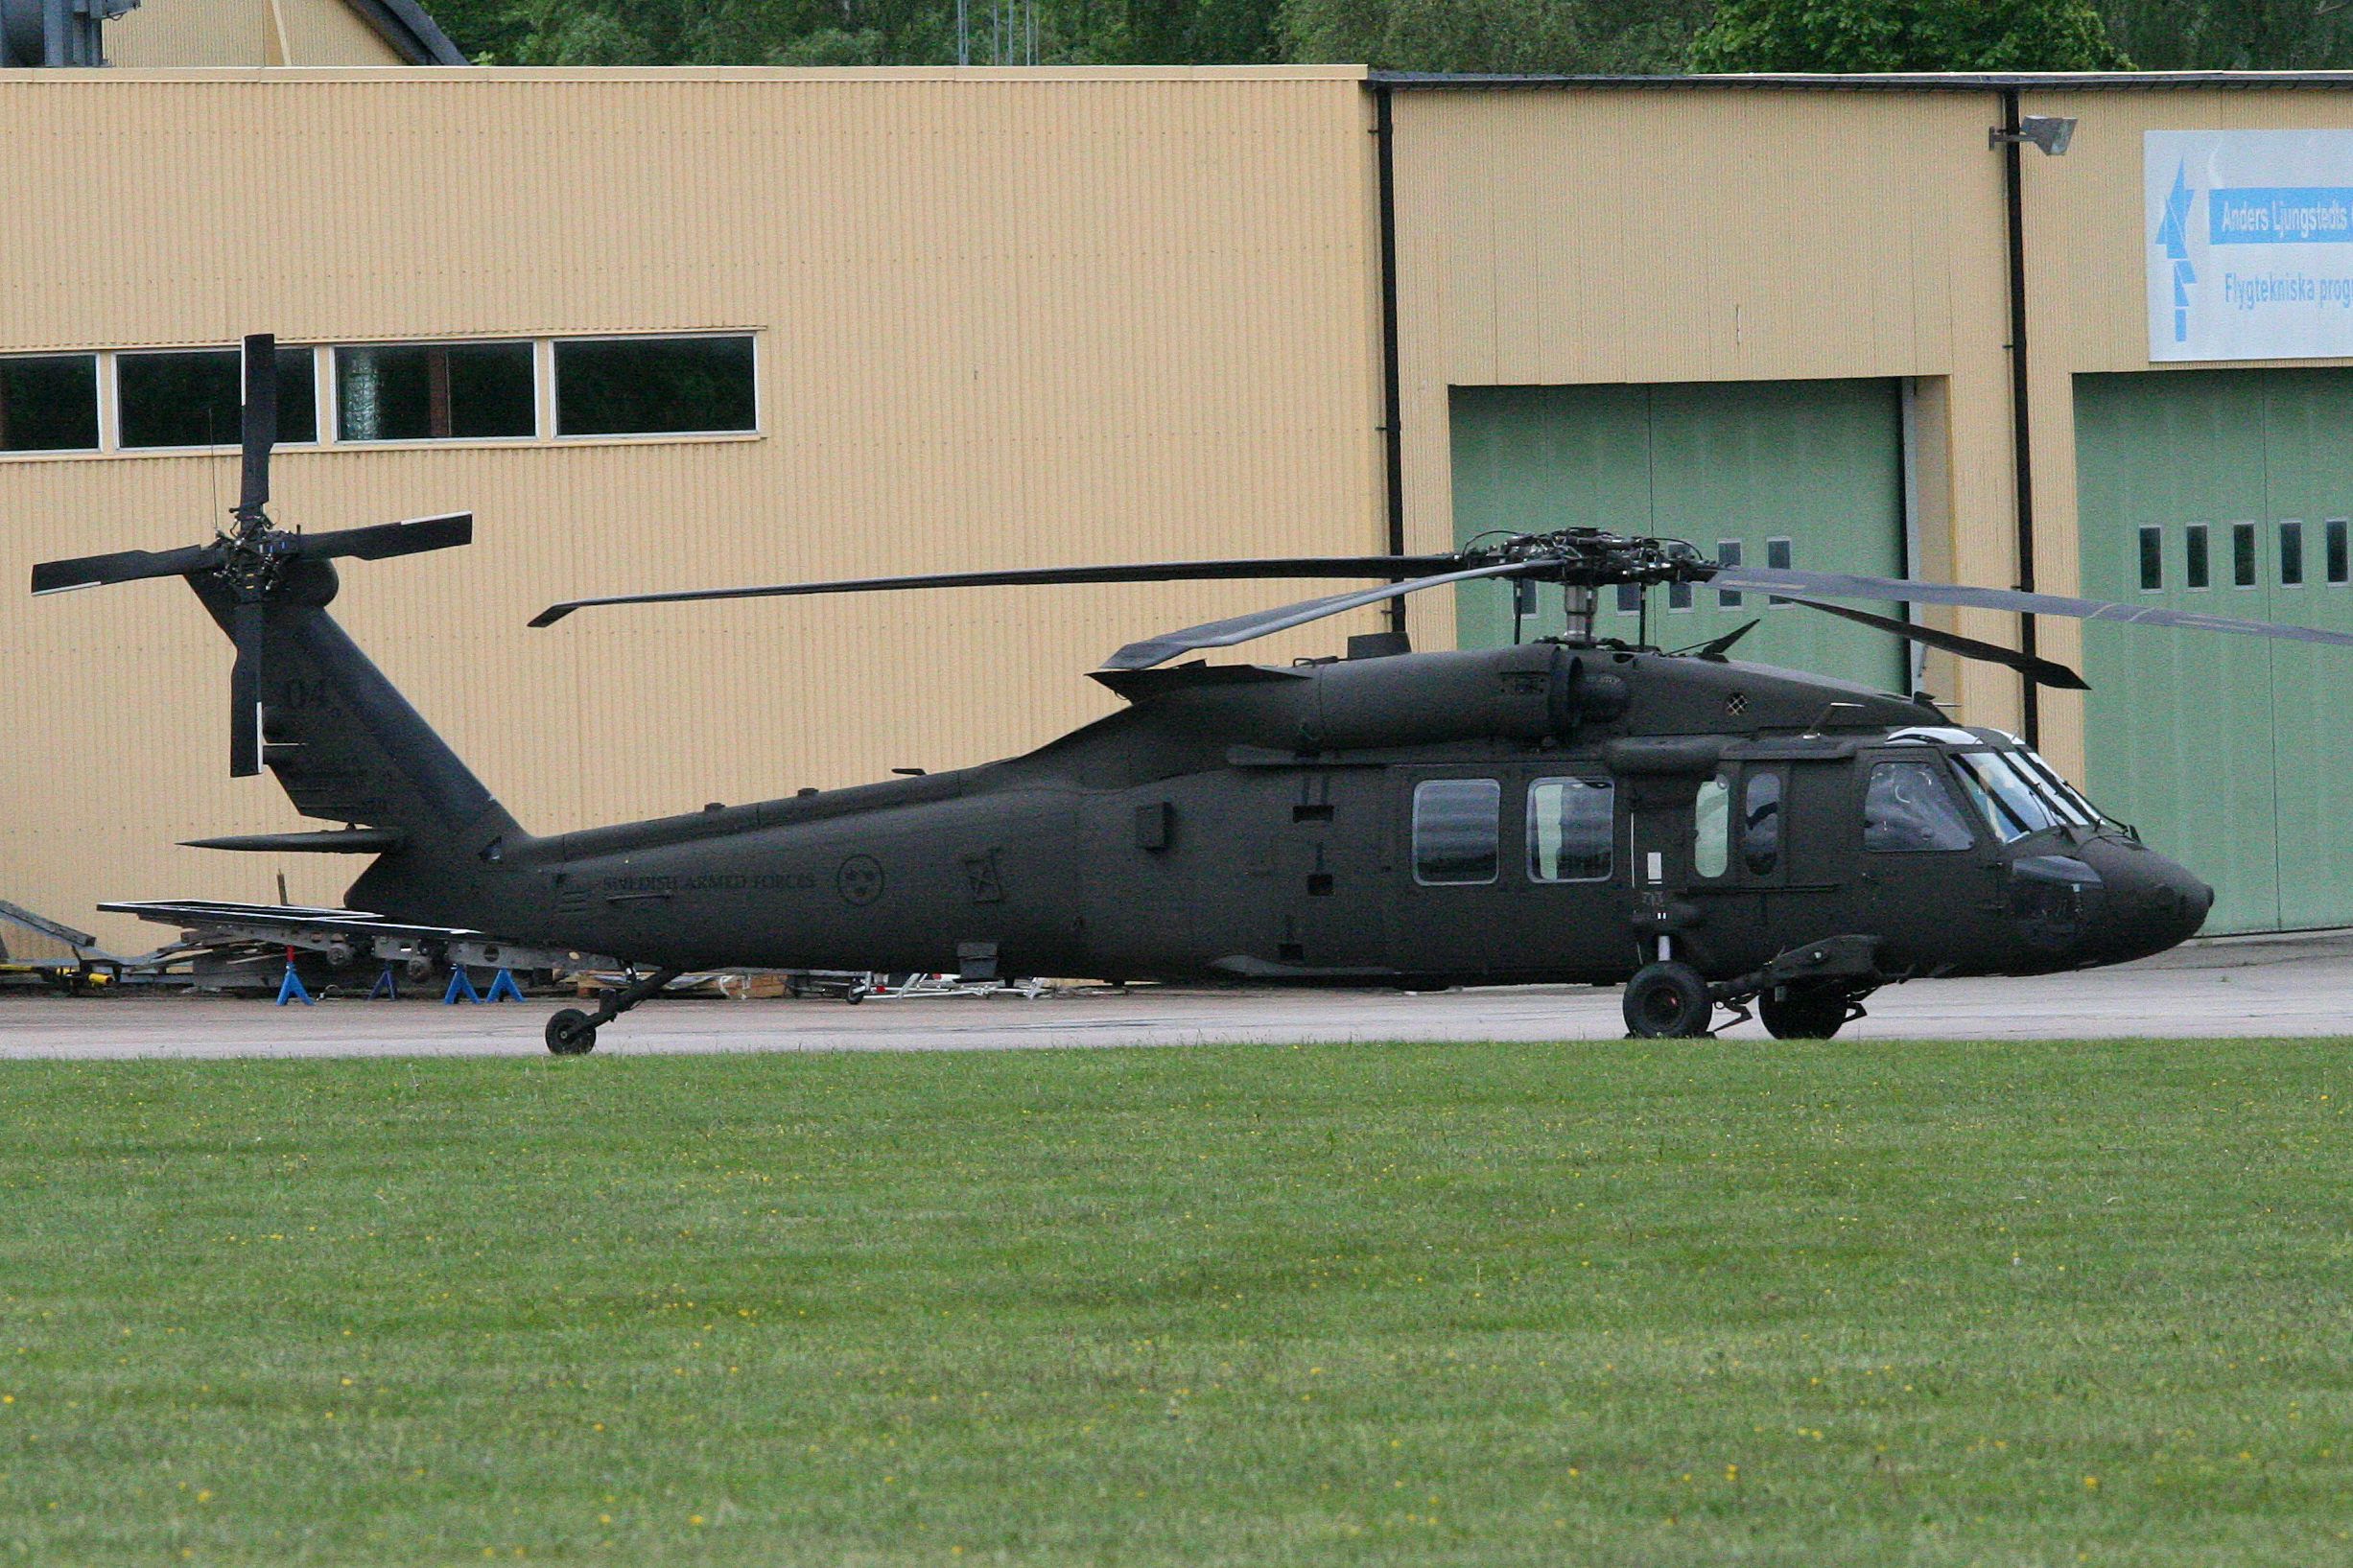 blackhawk for sale helicopter with File Sikorsky S 70 Blackhawk  Hkp 16a  161229 04  8364671659 on 6m Bf Austria Air Force Sikorsky S 70a Black Hawk further Airi landing also Yf 23 Black Widow Tactical Fighter moreover File Israeli Air Force  UH 60 Black Hawk likewise File Sikorsky S 70 Blackhawk  Hkp 16A  161229 04  8364671659.